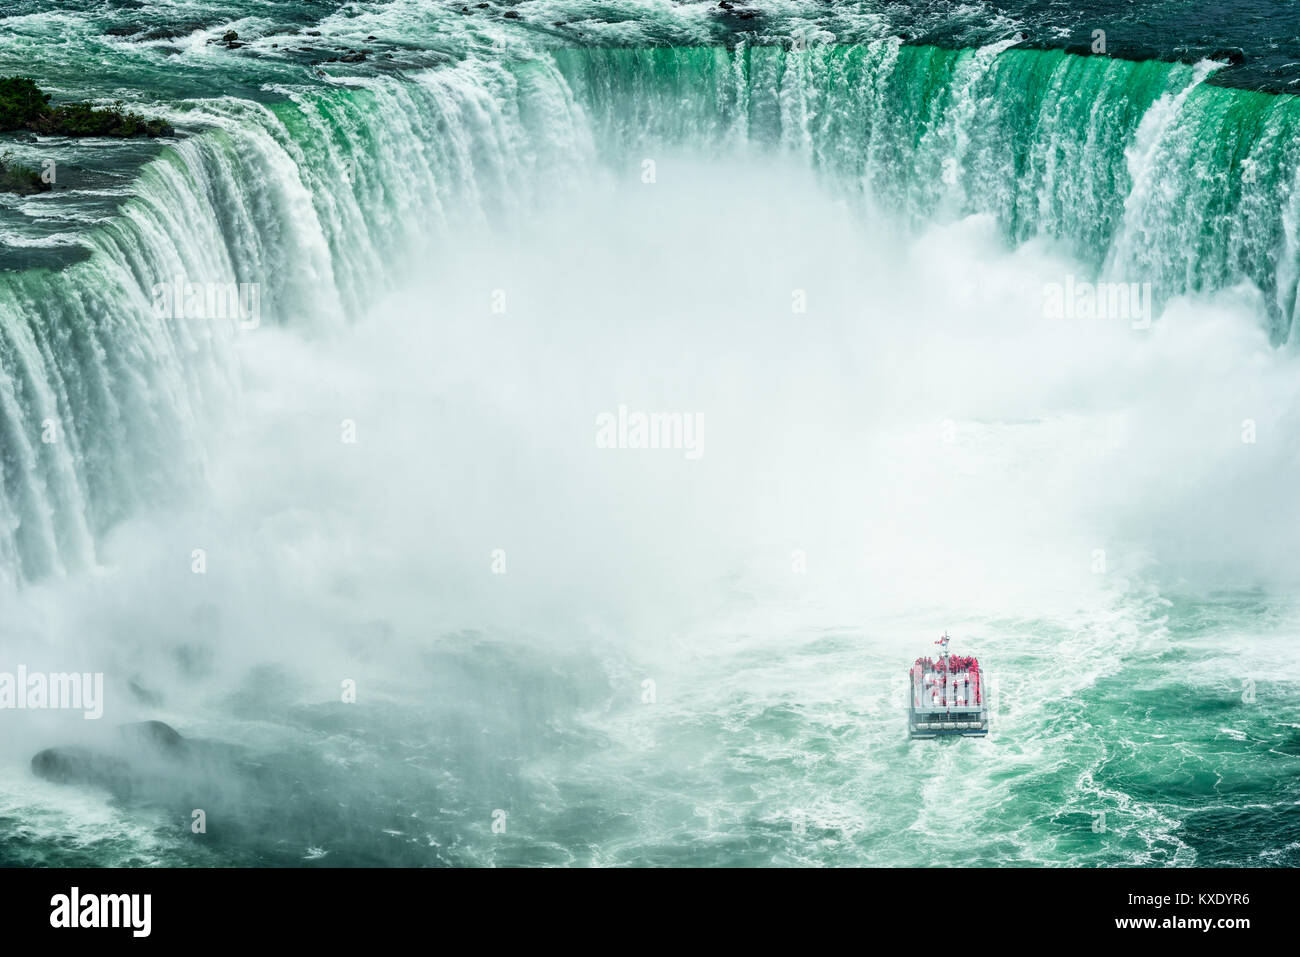 High Angle view on Passenger Ship approaching the Niagara Falls, seen from Canadian side - Stock Image